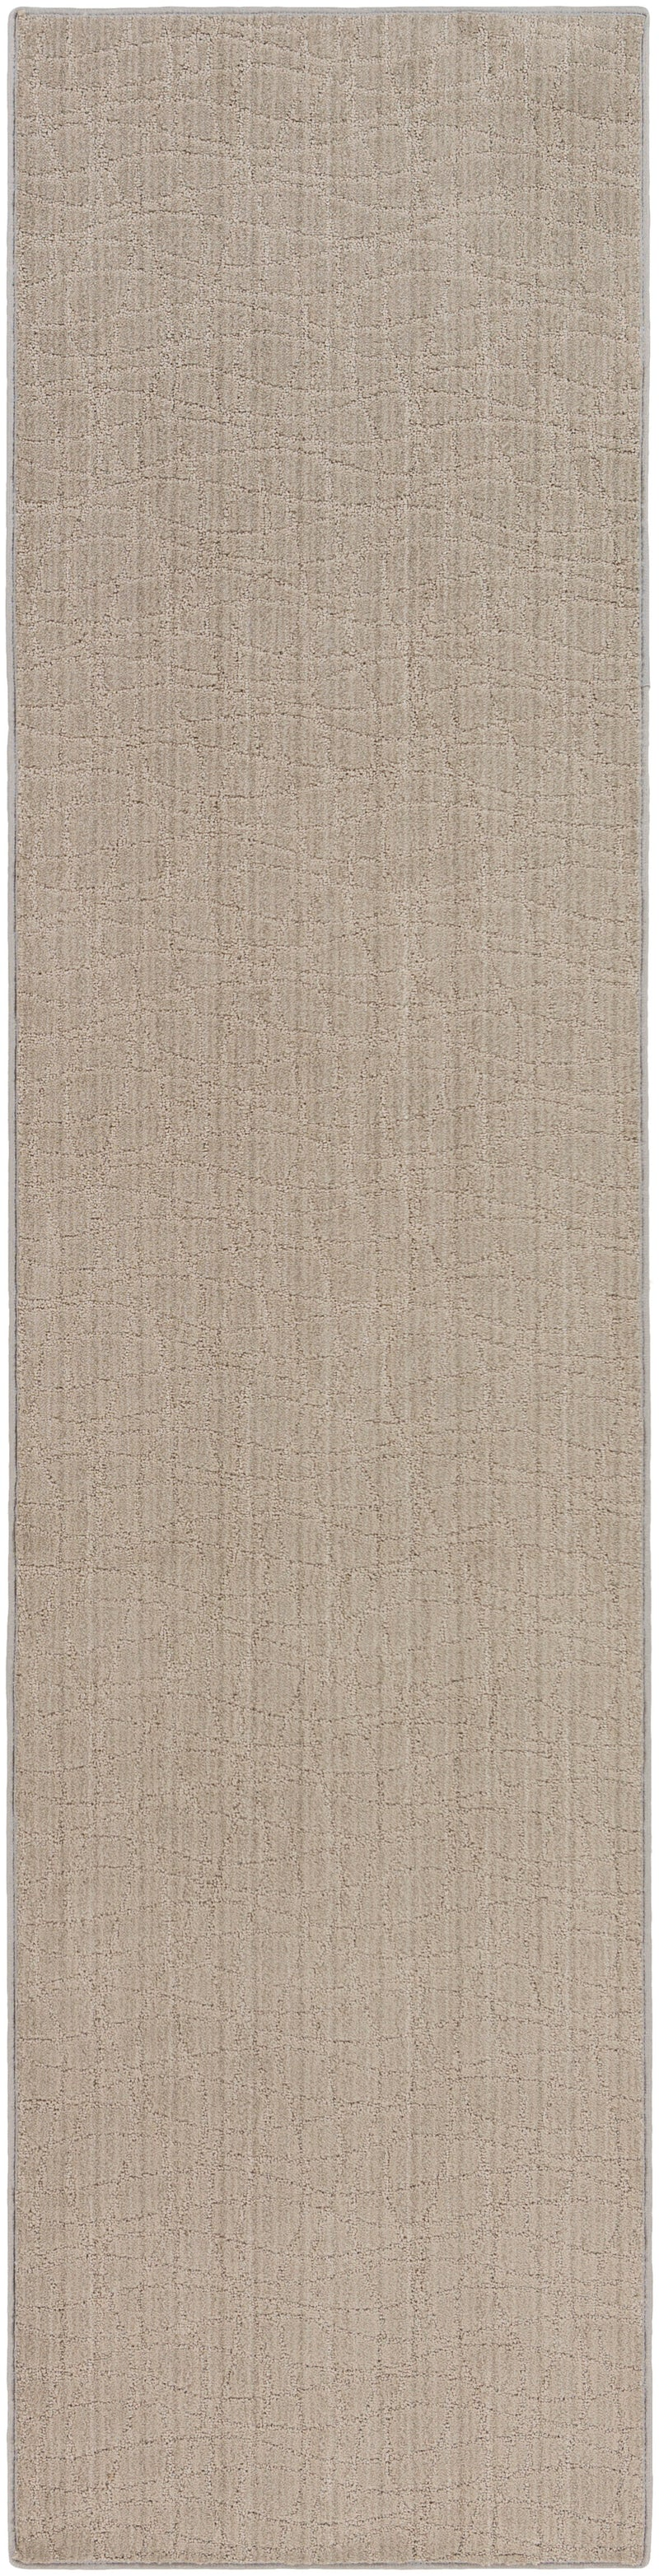 "Nolen NOL-1007 18"" Sample Made to Order Rugs"